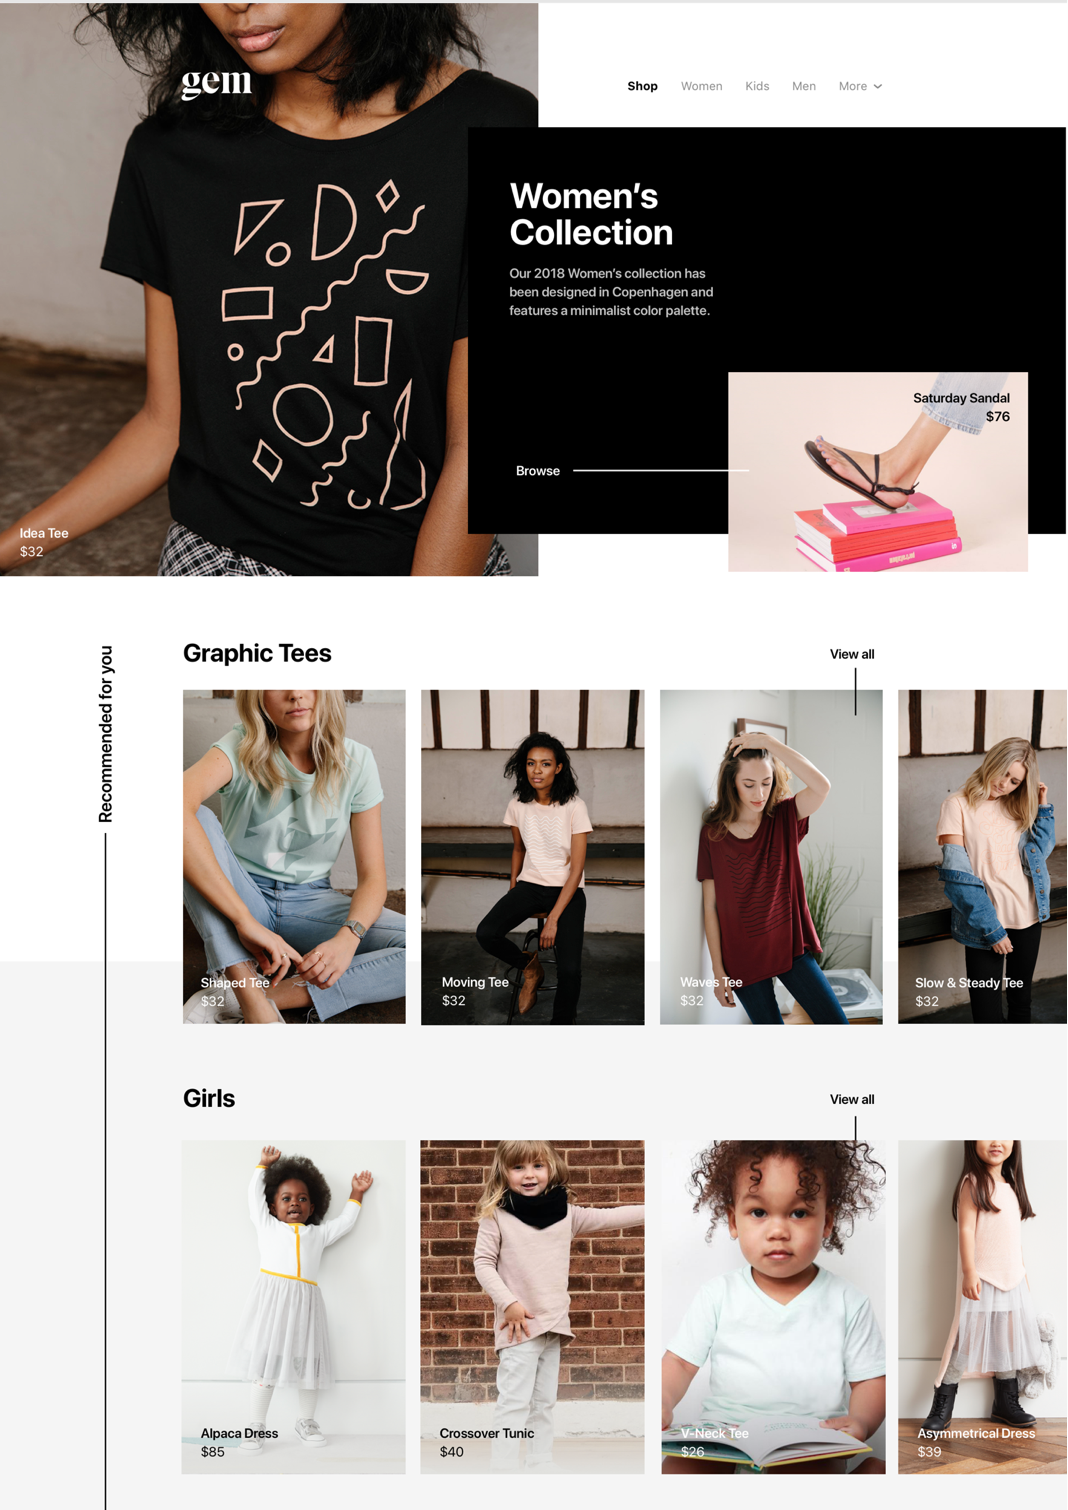 2fdee6dcf ... kind of personalization in the ecommerce fashion industry. For  instance, visitors who have either browsed or bought women's clothing  should experience a ...